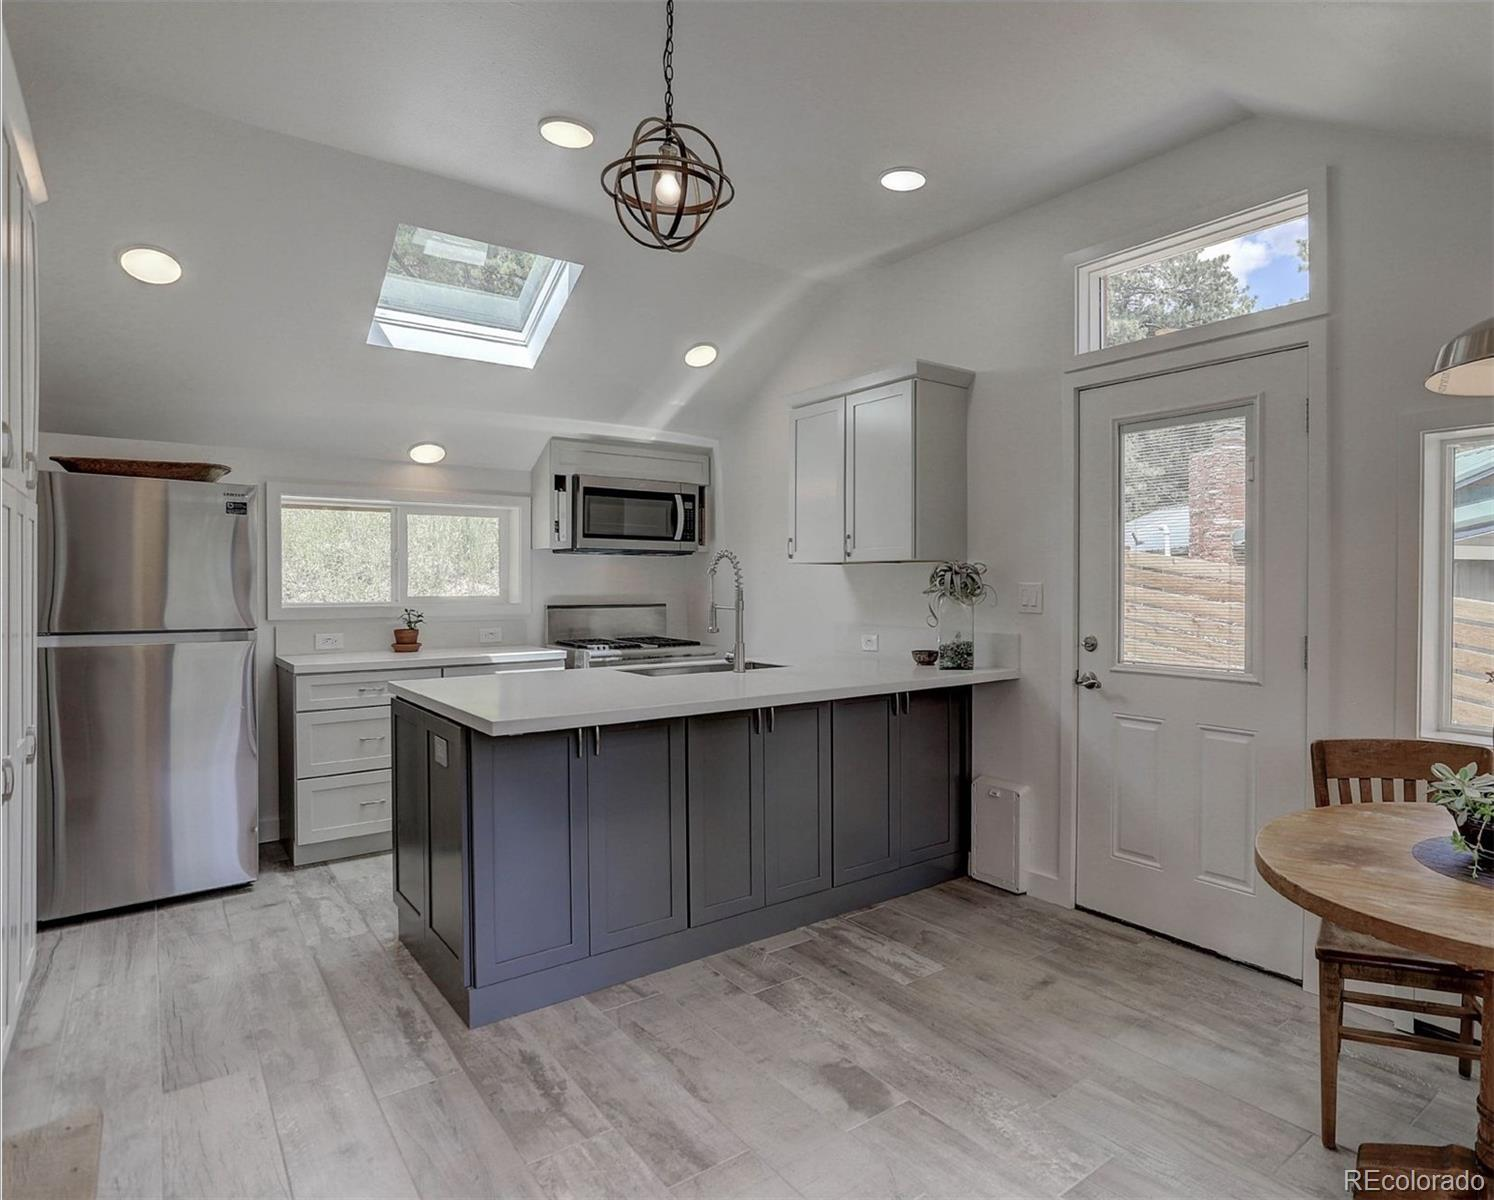 309 Bendemeer Drive, Evergreen, CO 80439 - Evergreen, CO real estate listing